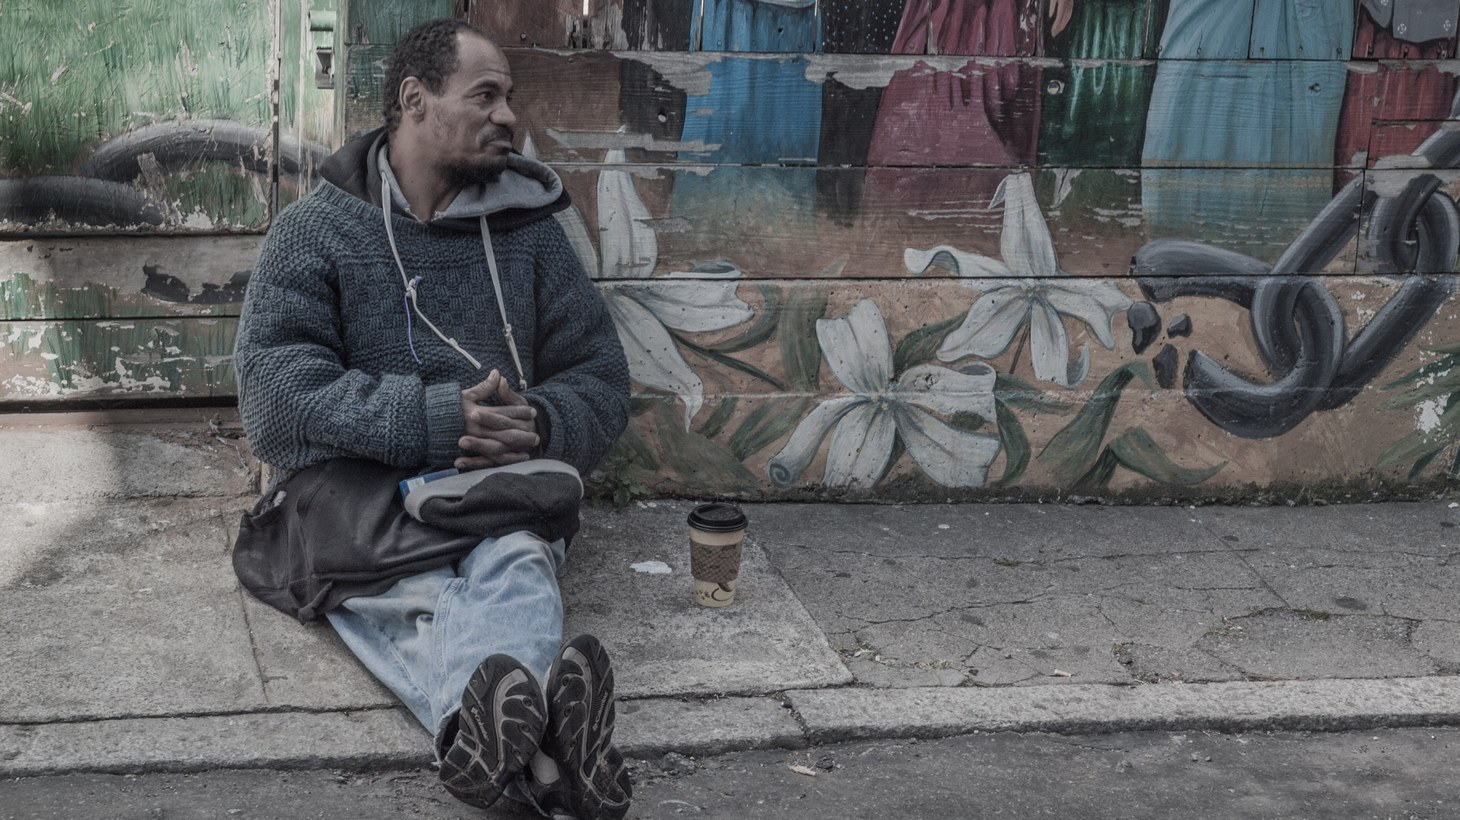 A homeless man in the Mission District, San Francisco, CA.